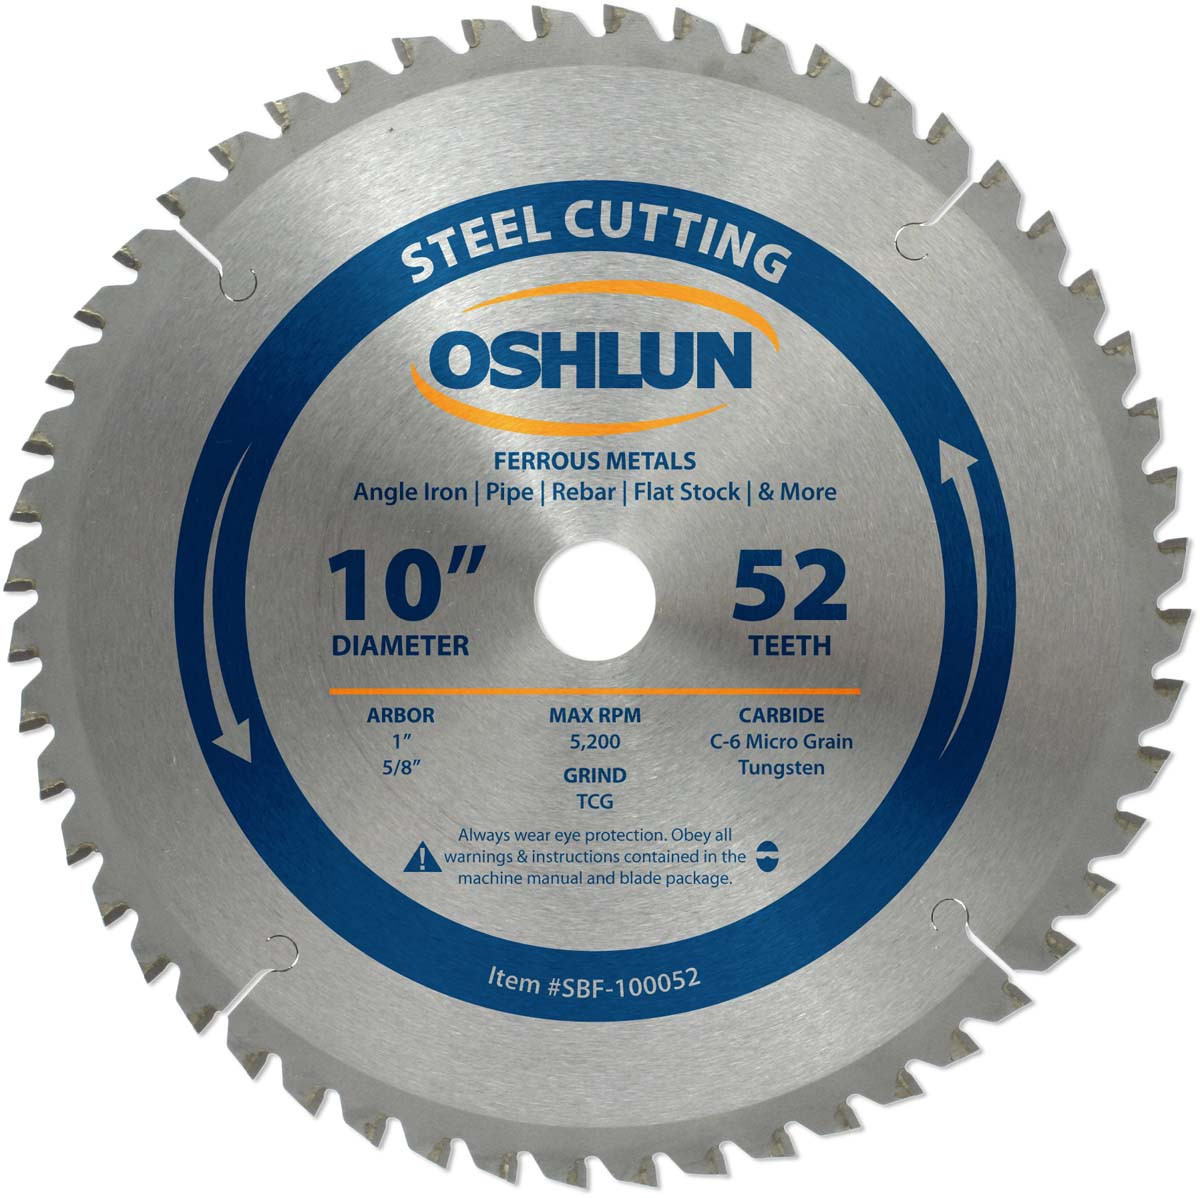 Steel cutting circular saw ferrous metal saw blades greentooth Gallery